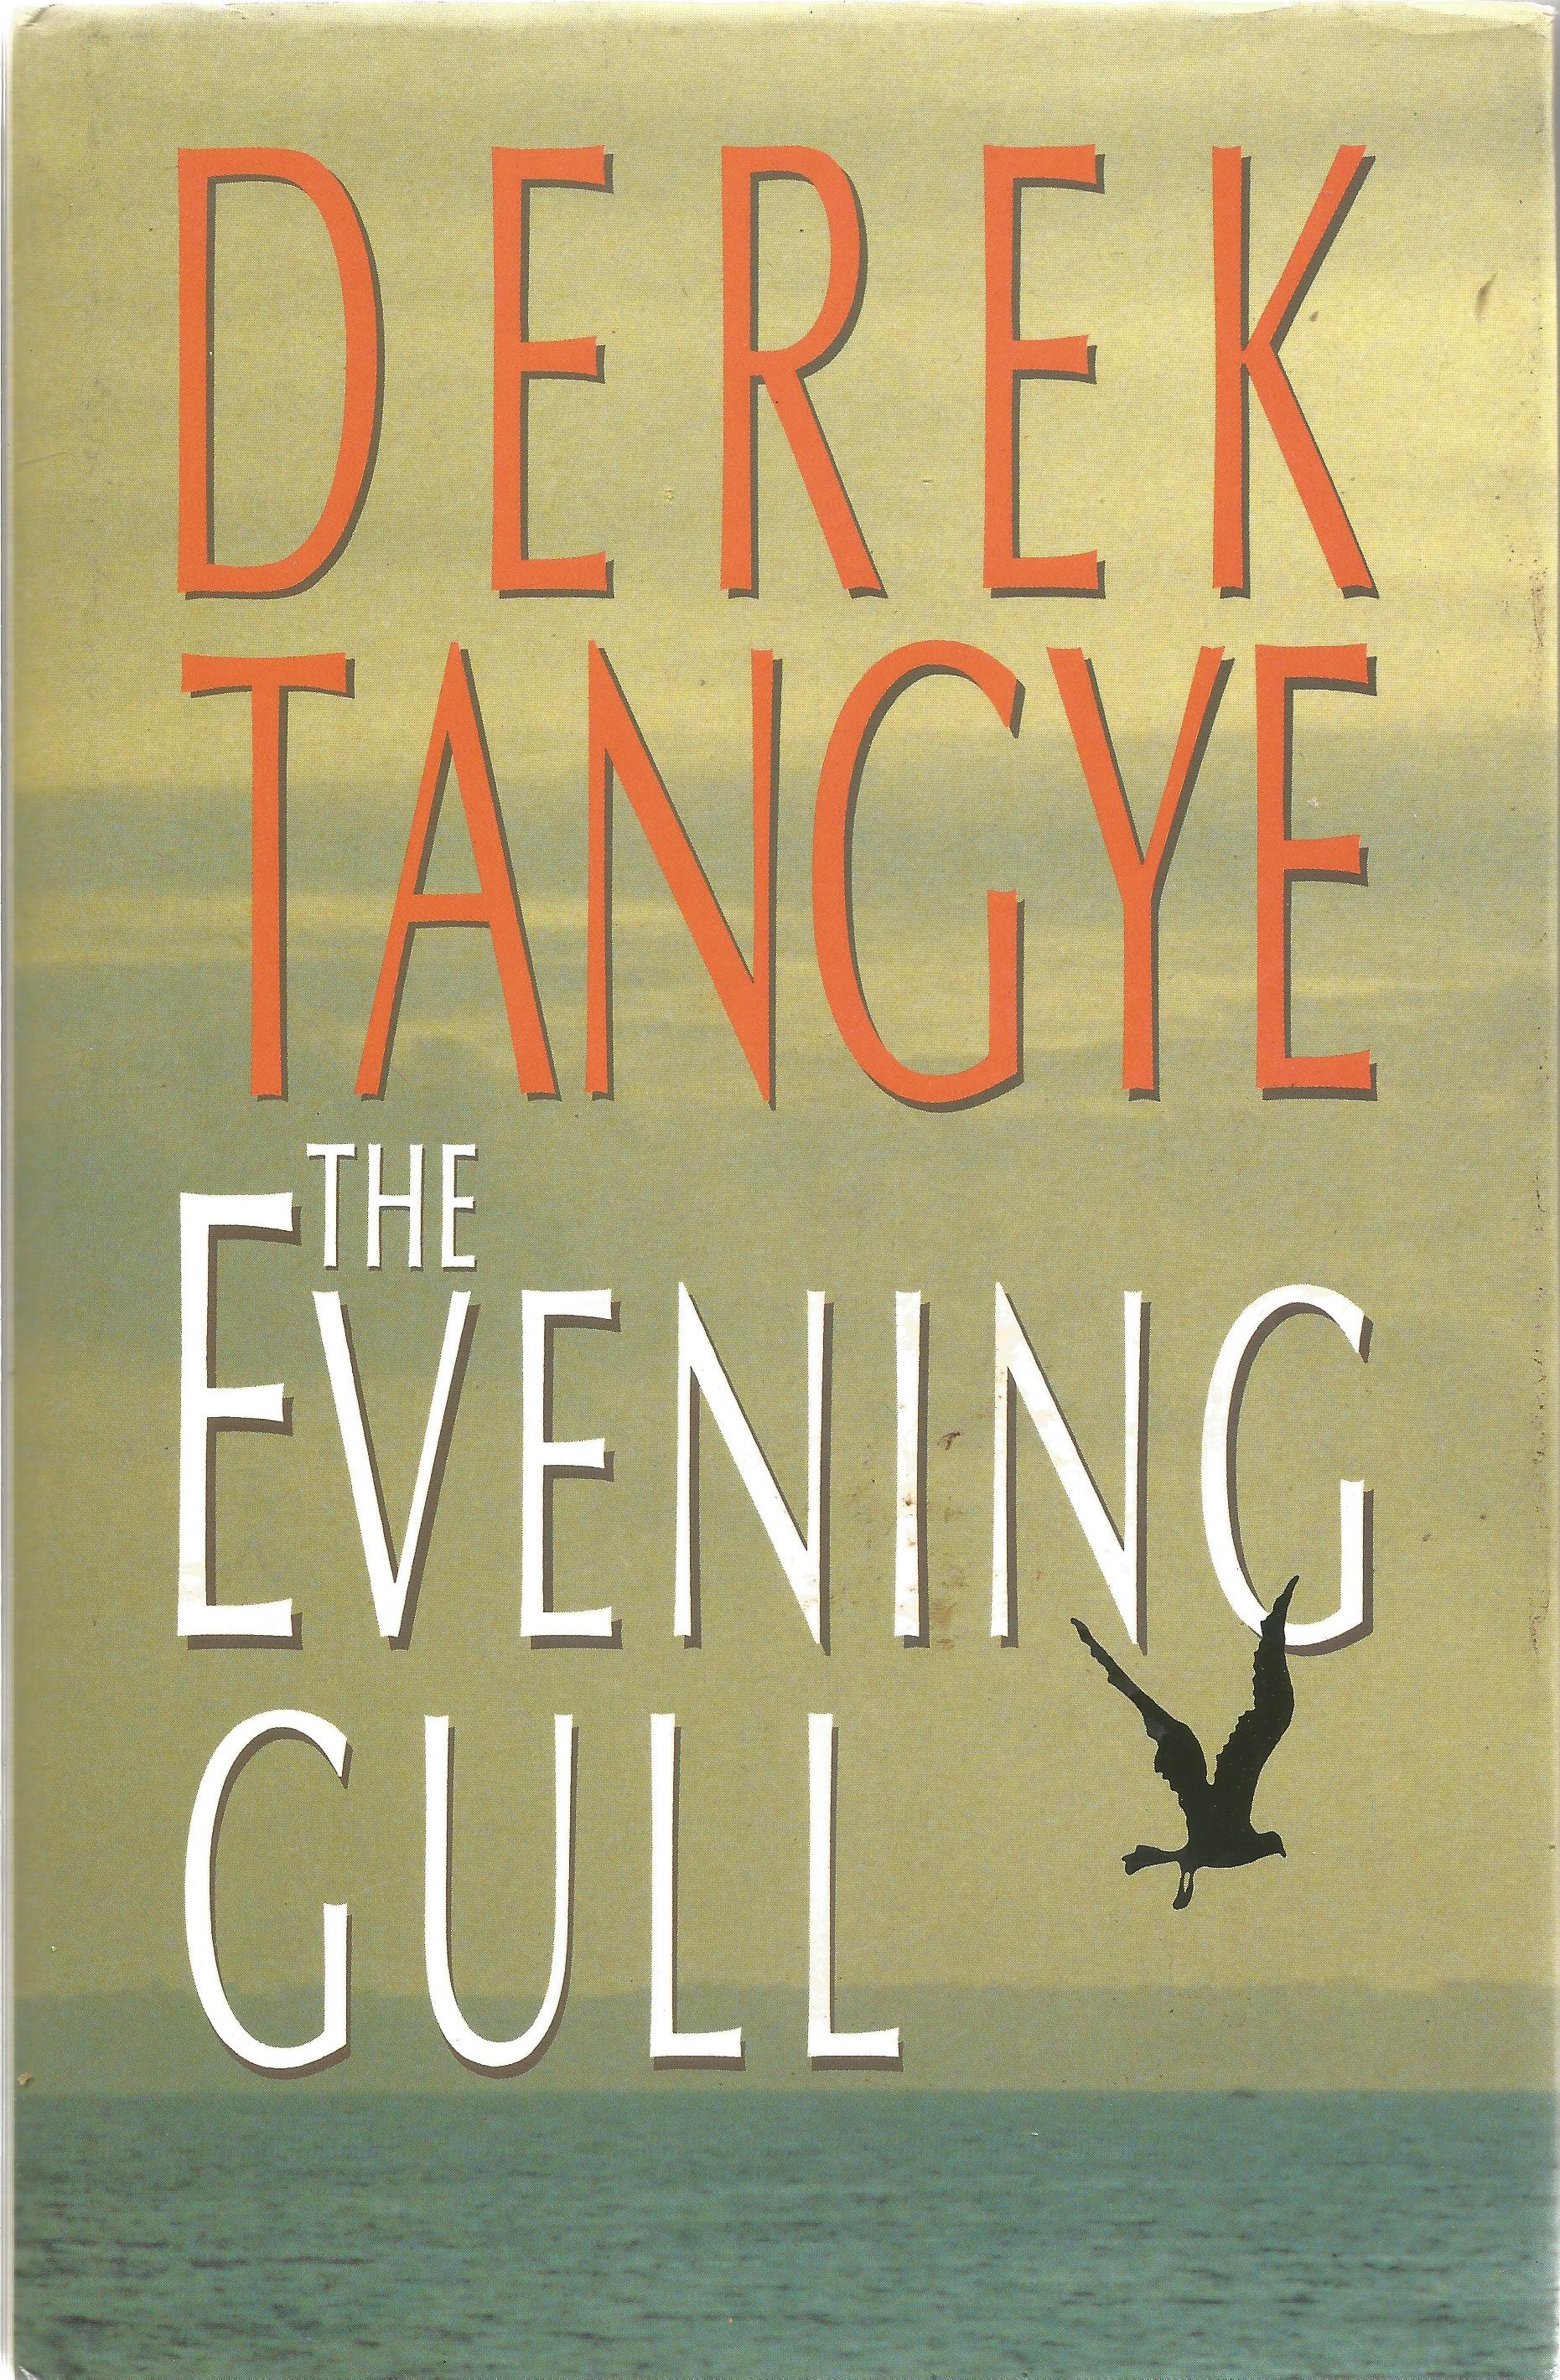 Derek Tangye Hardback Book The Evening Cull signed by the Author on the First Page First Edition